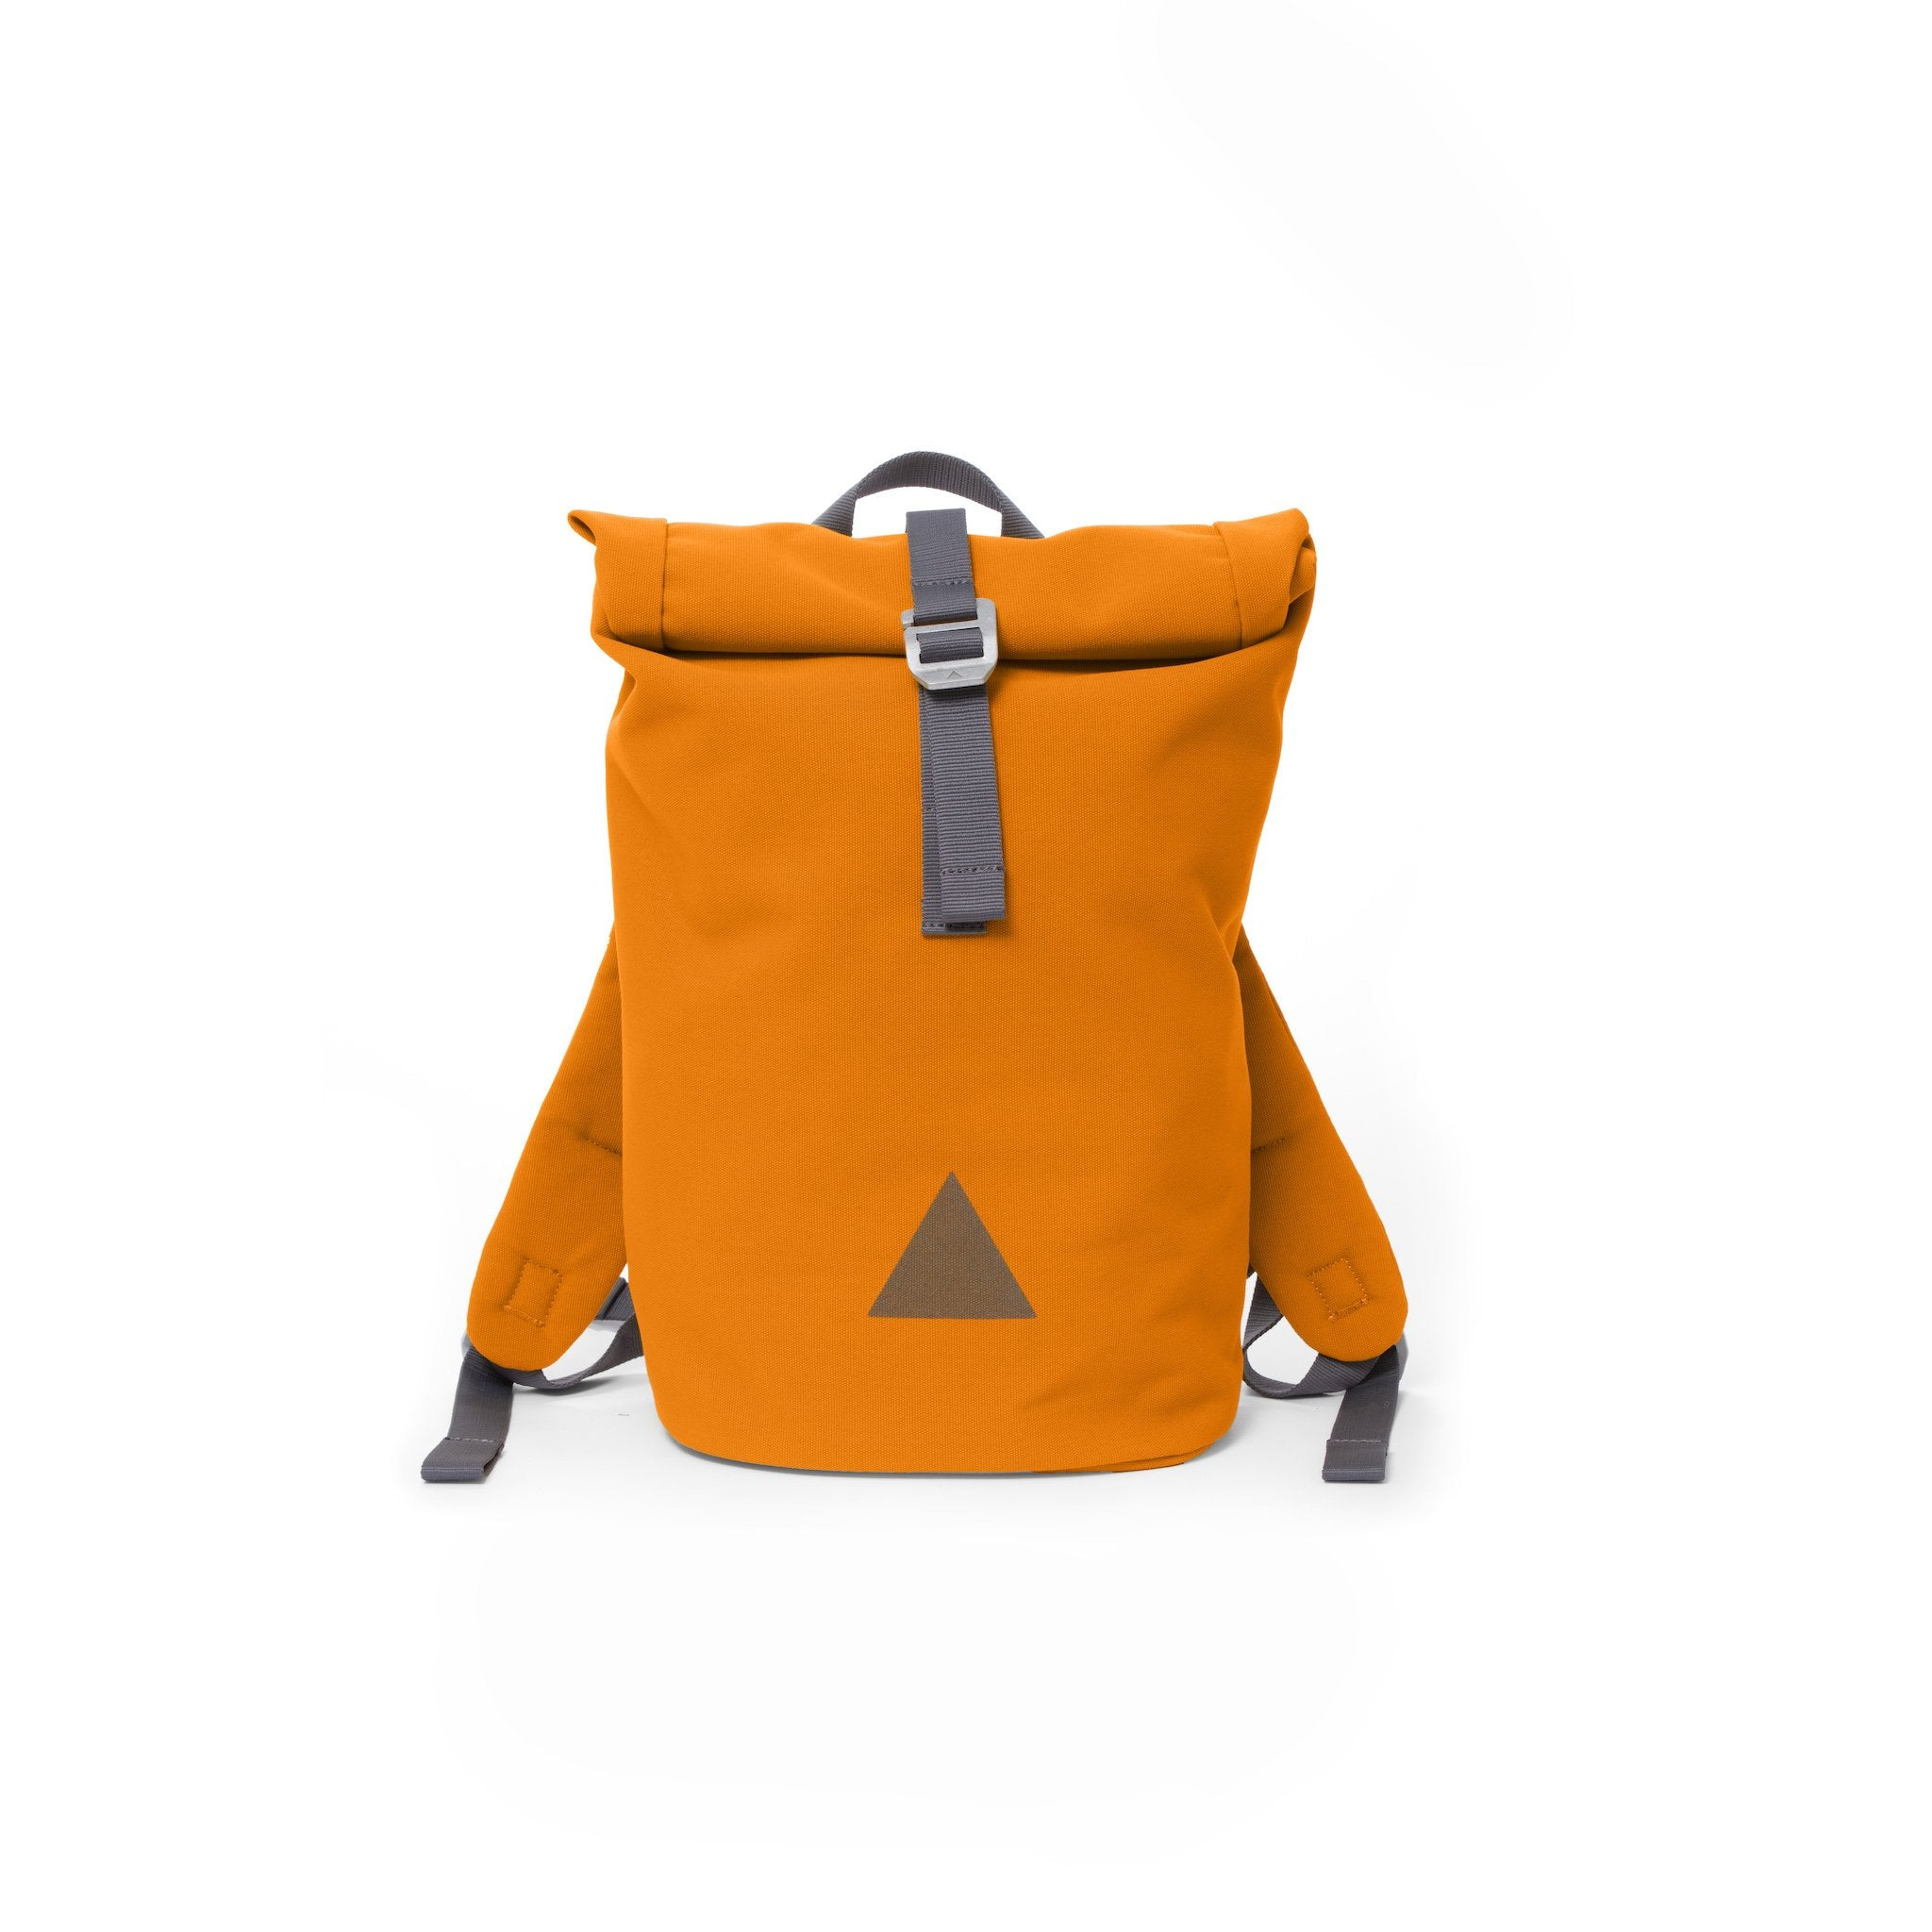 Orange recycled canvas women's rolltop backpack with triangle logo.